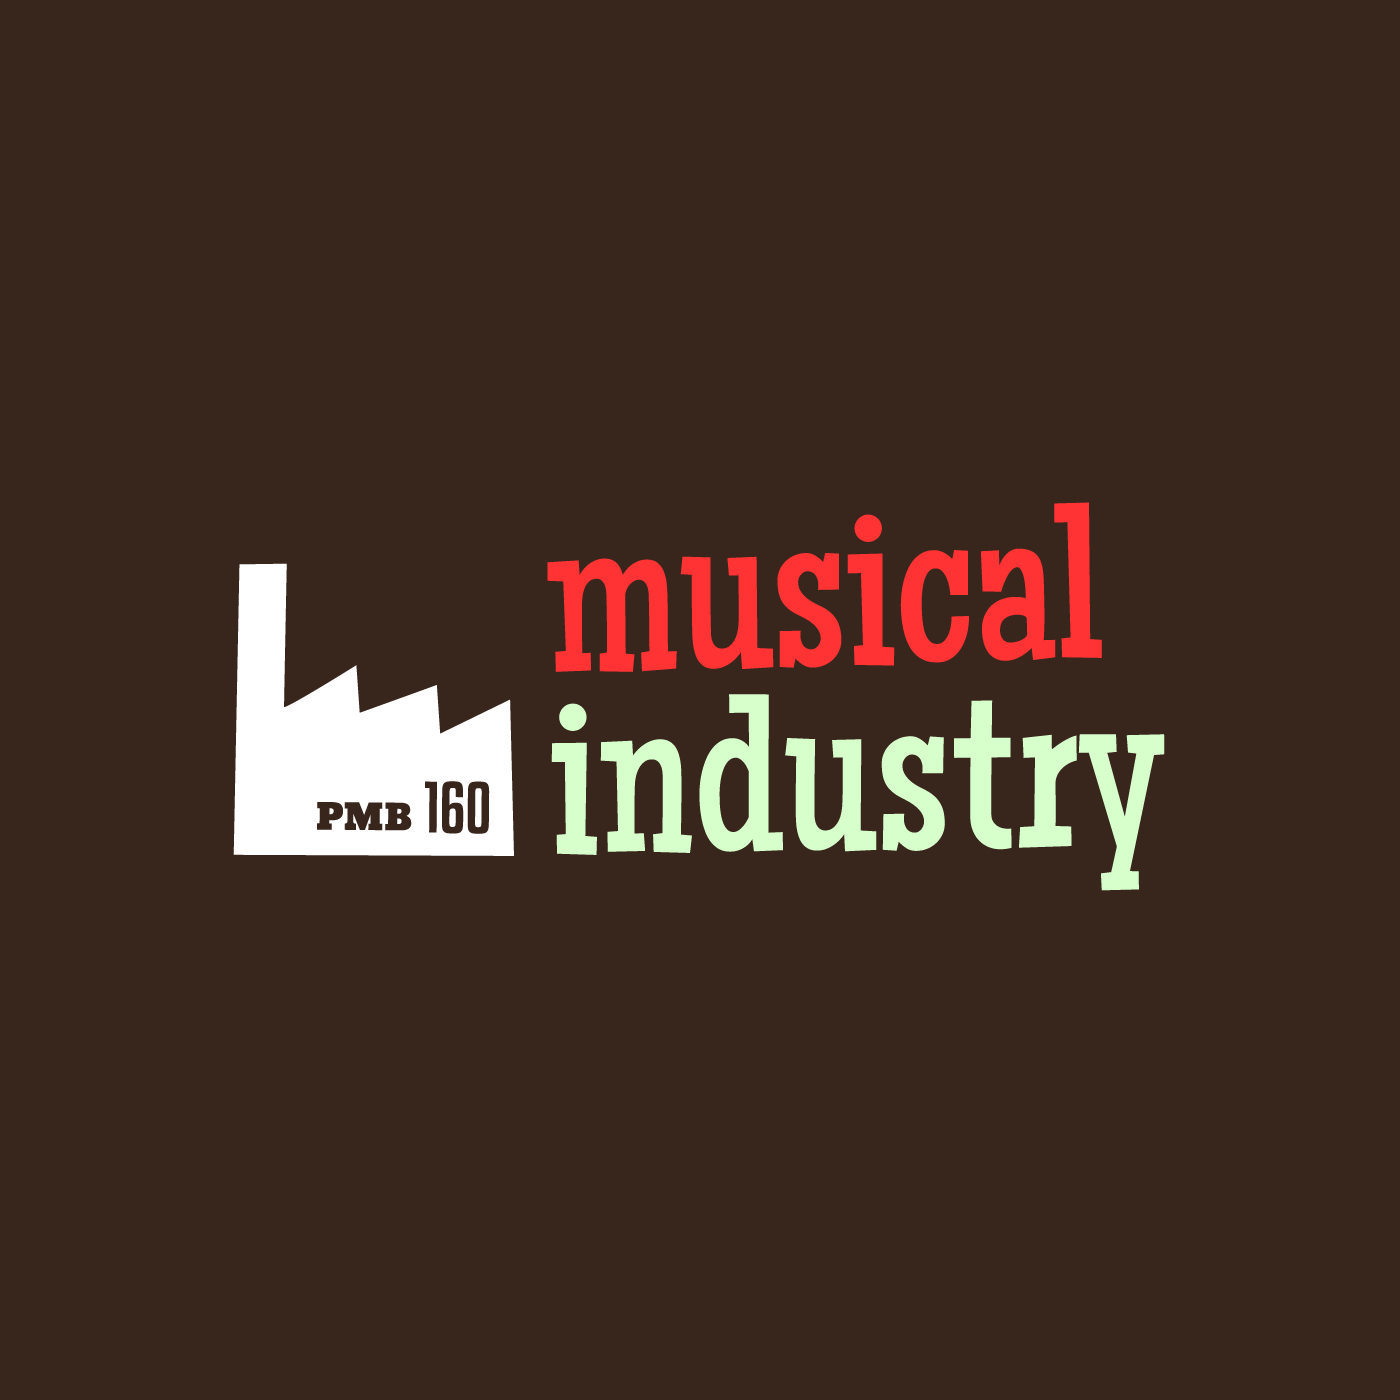 PMB160 Musical Industry